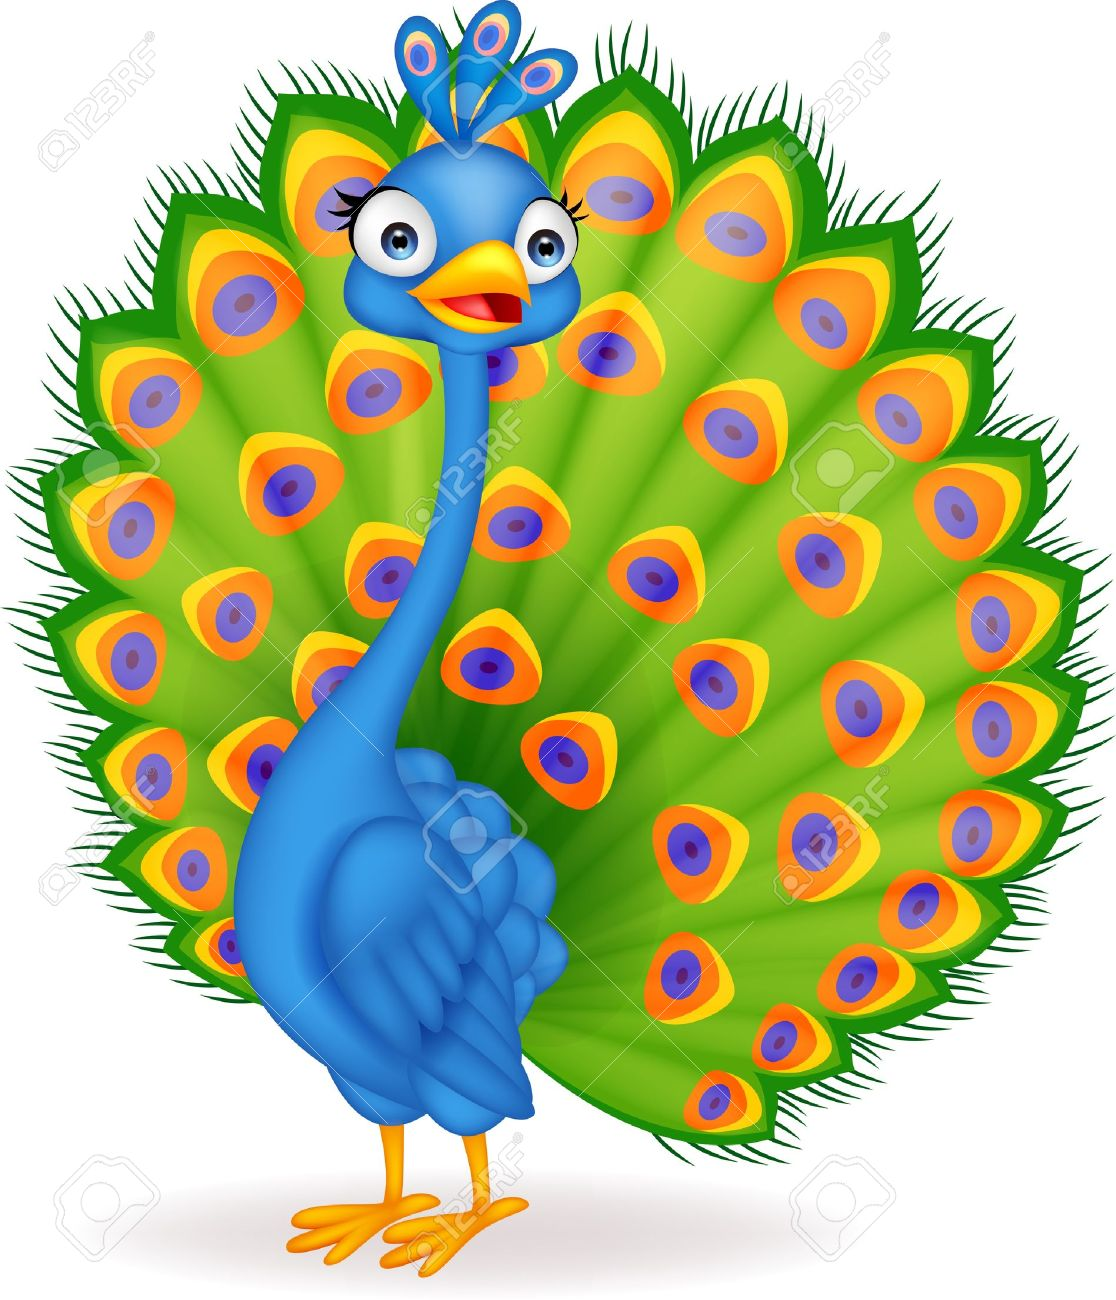 10 354 peacock stock illustrations cliparts and royalty free